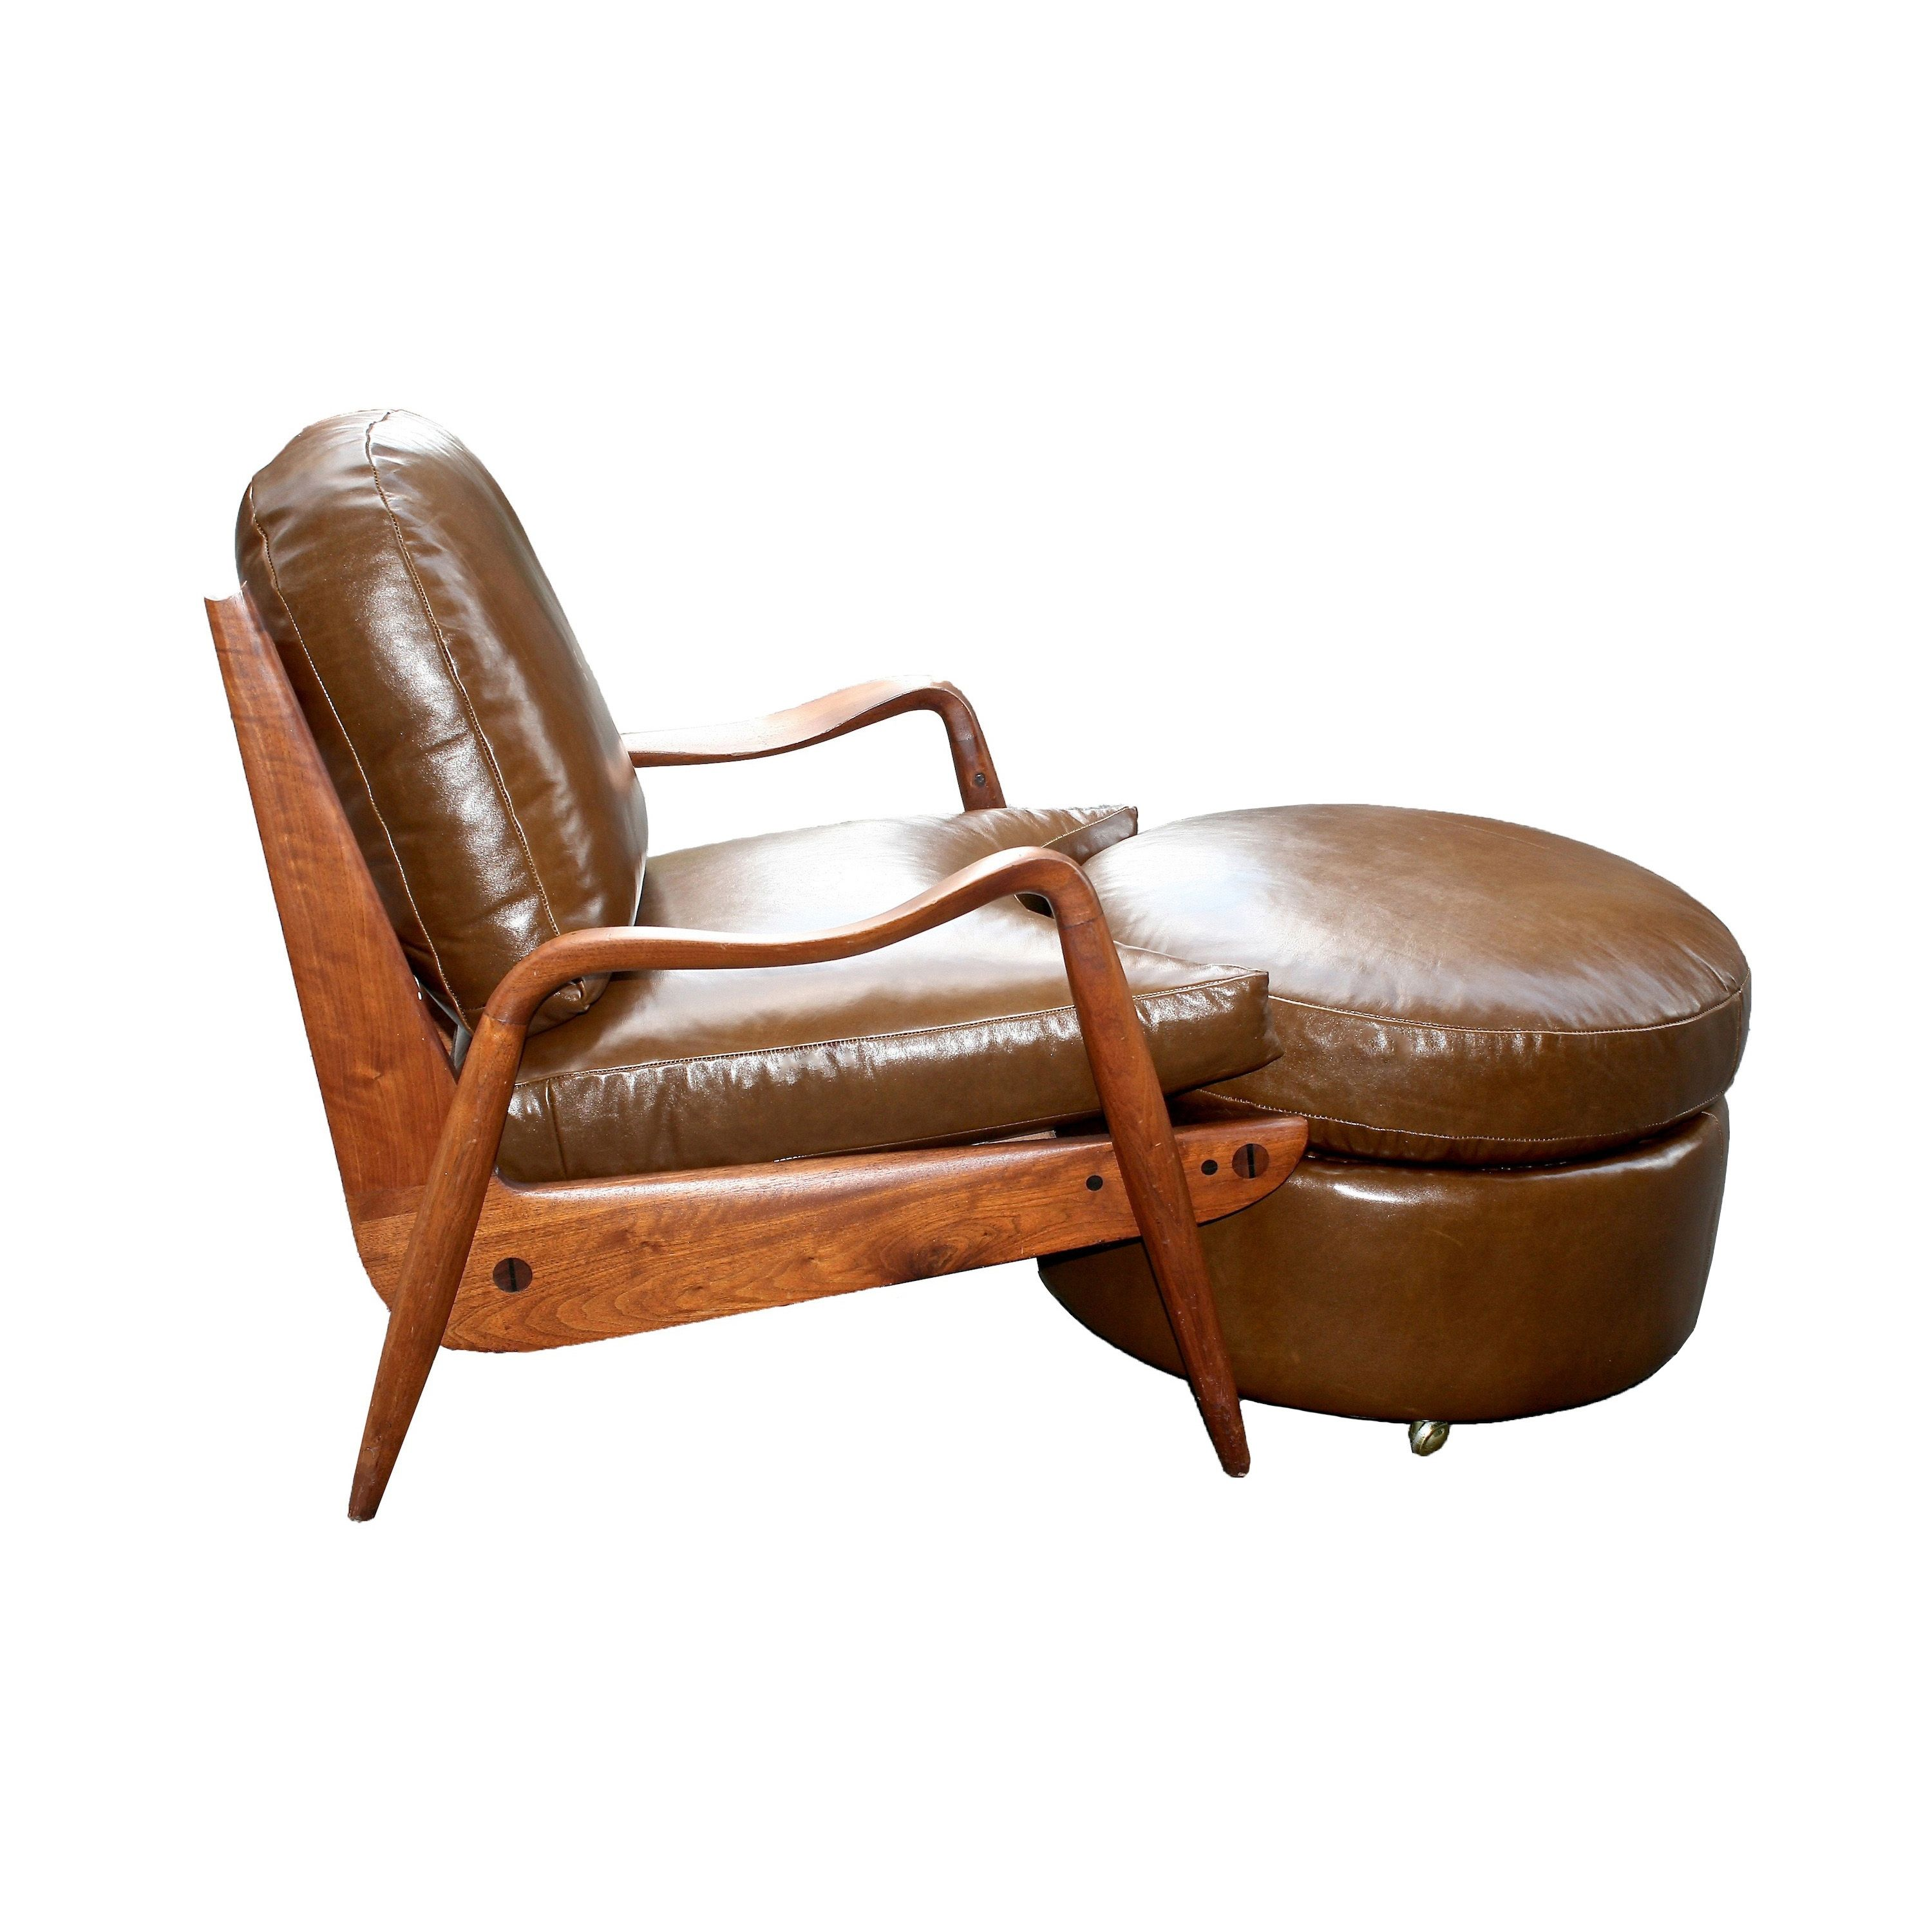 bedroom lounge chair ottoman http productcreationlabs com